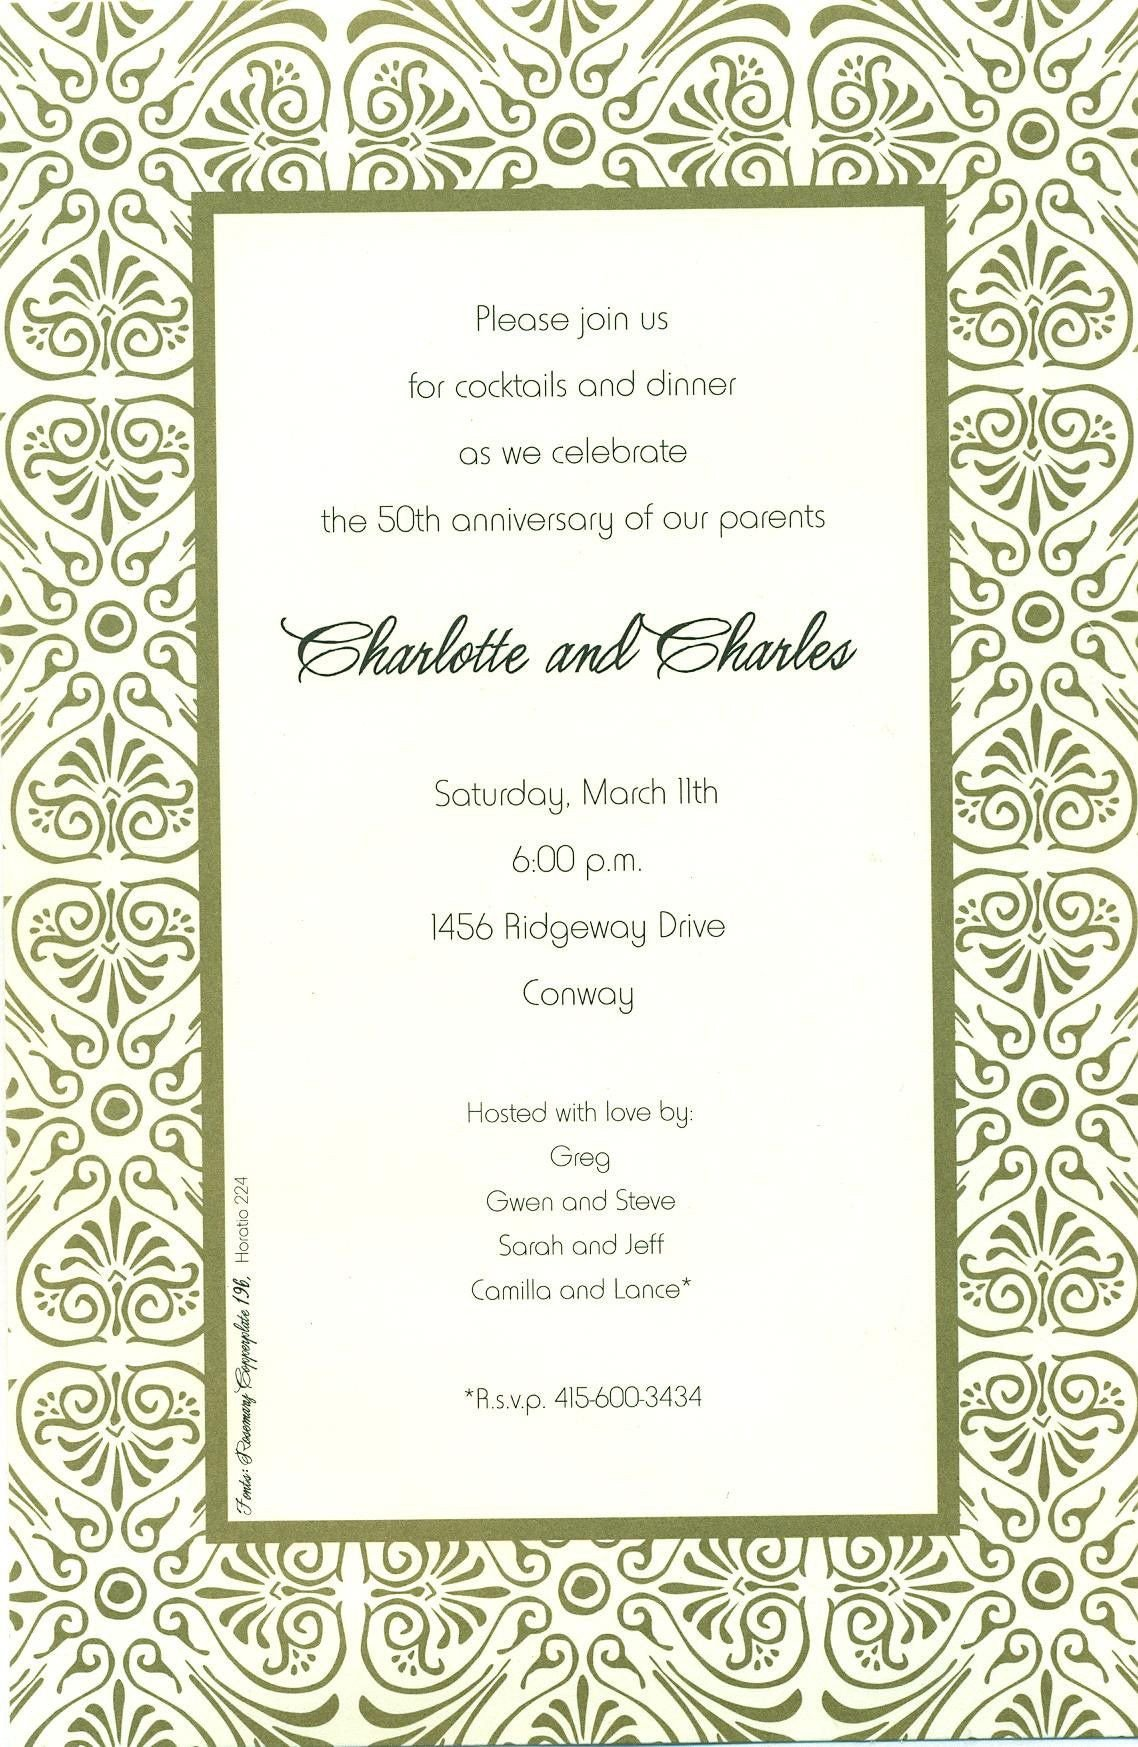 Free Dinner Invitation Templates Downloadable Dinner Invitations Templates